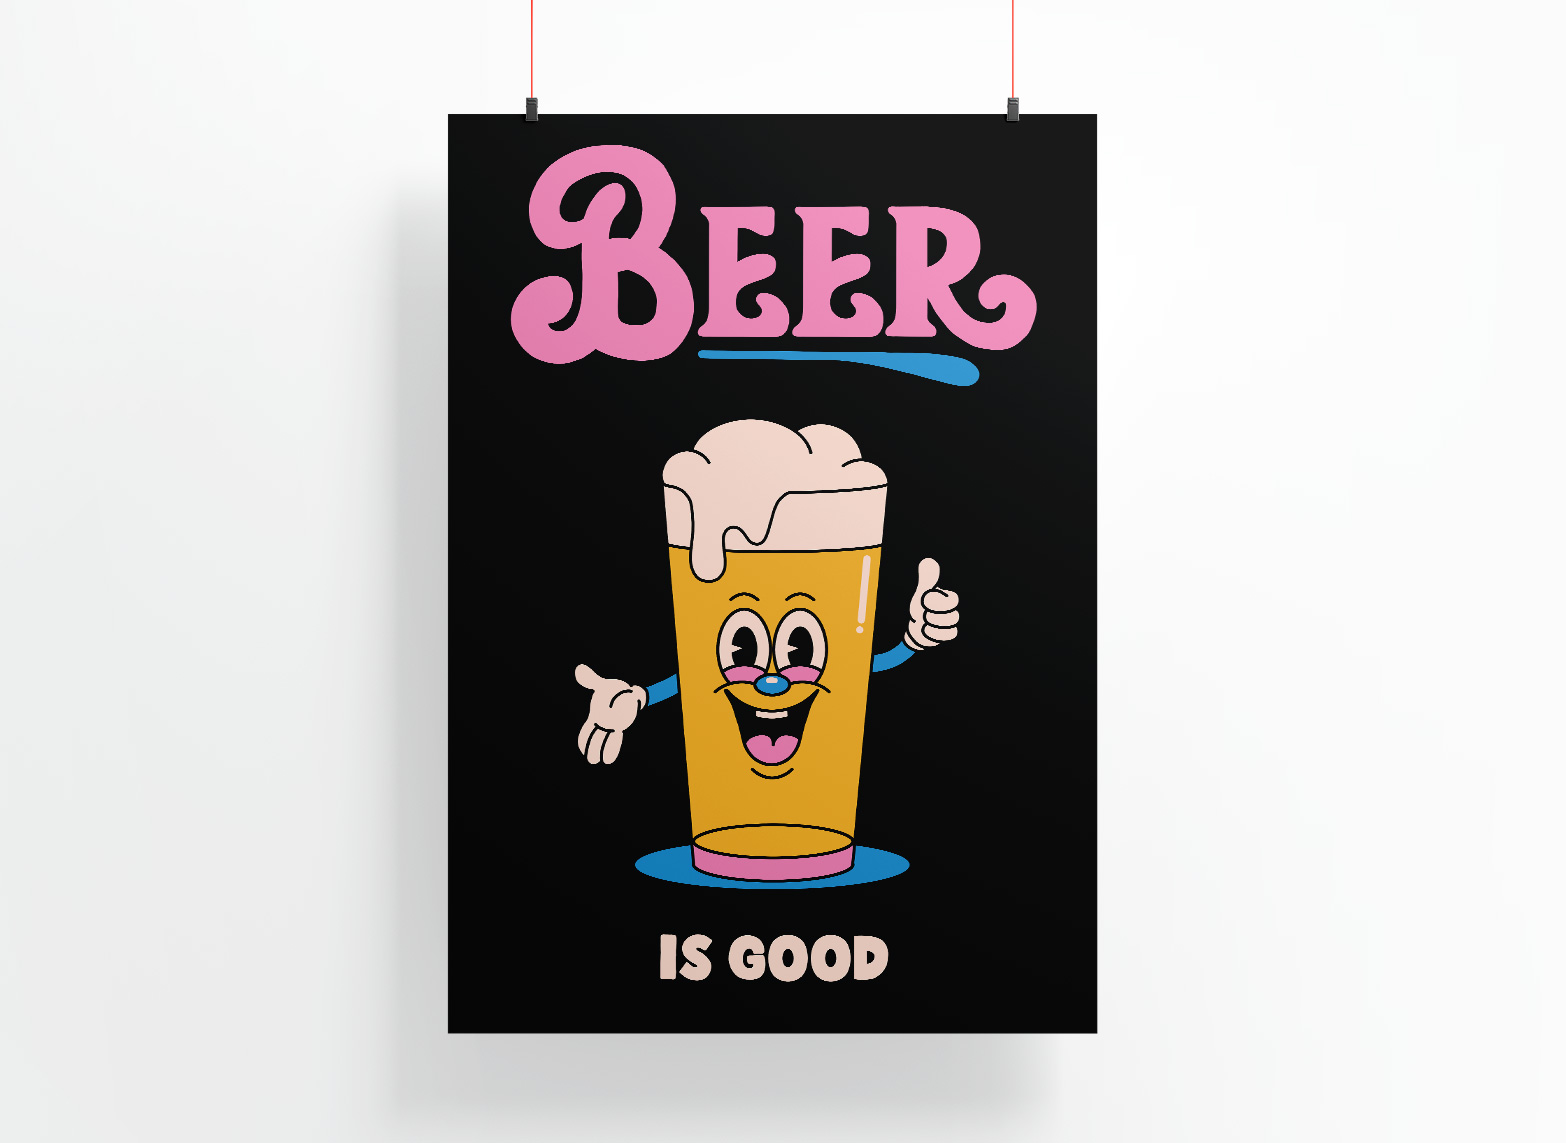 BEER - LMITED EDITION PRINT